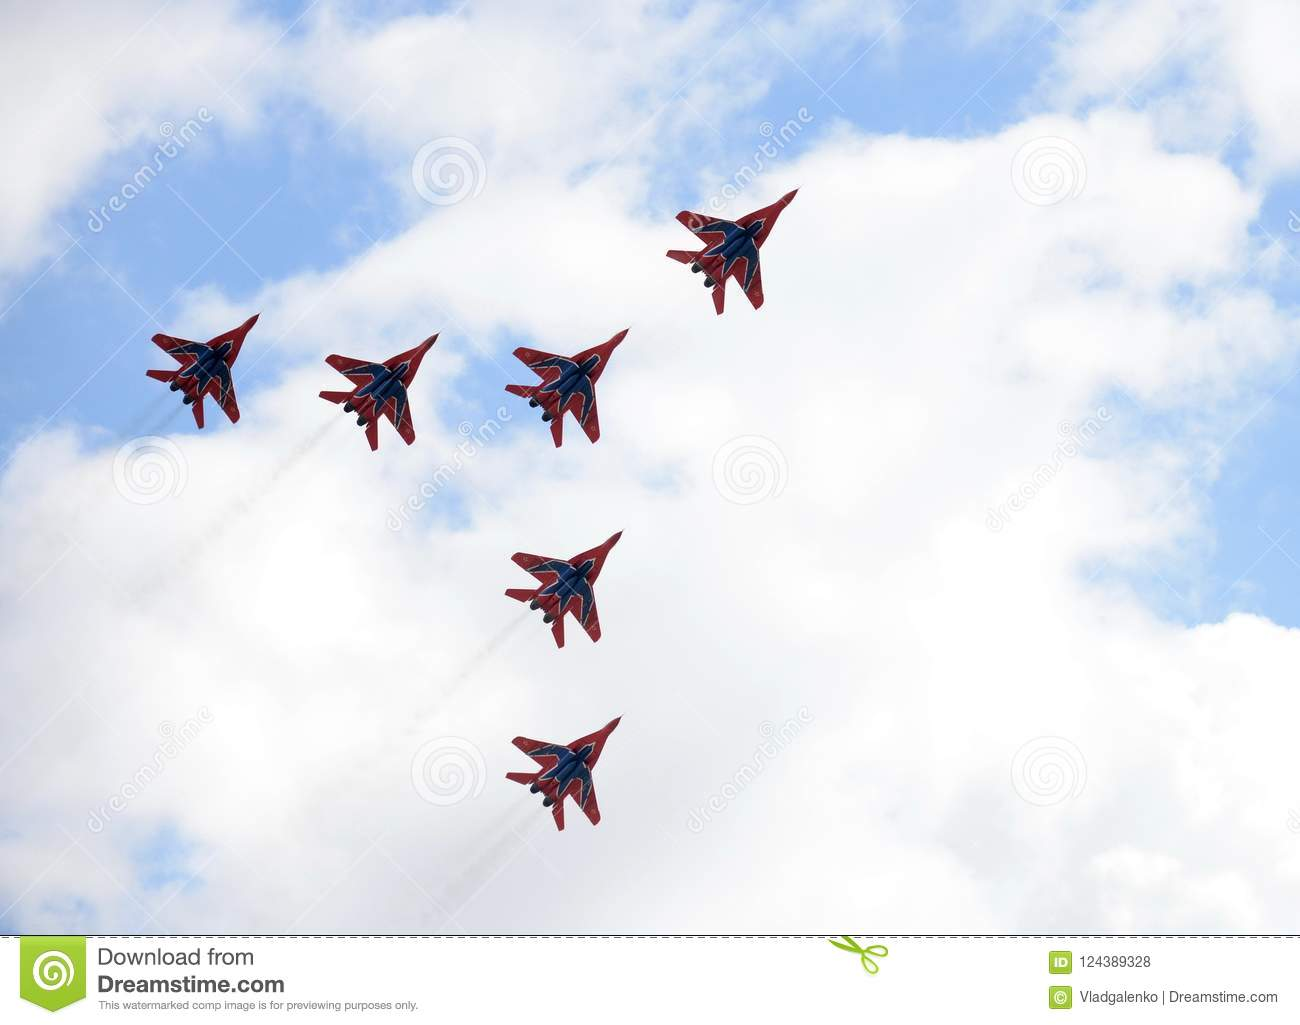 Performance of the Swifts aerobatic team on multi-purpose highly maneuverable MiG-29 fighters over the Myachkovo airfield